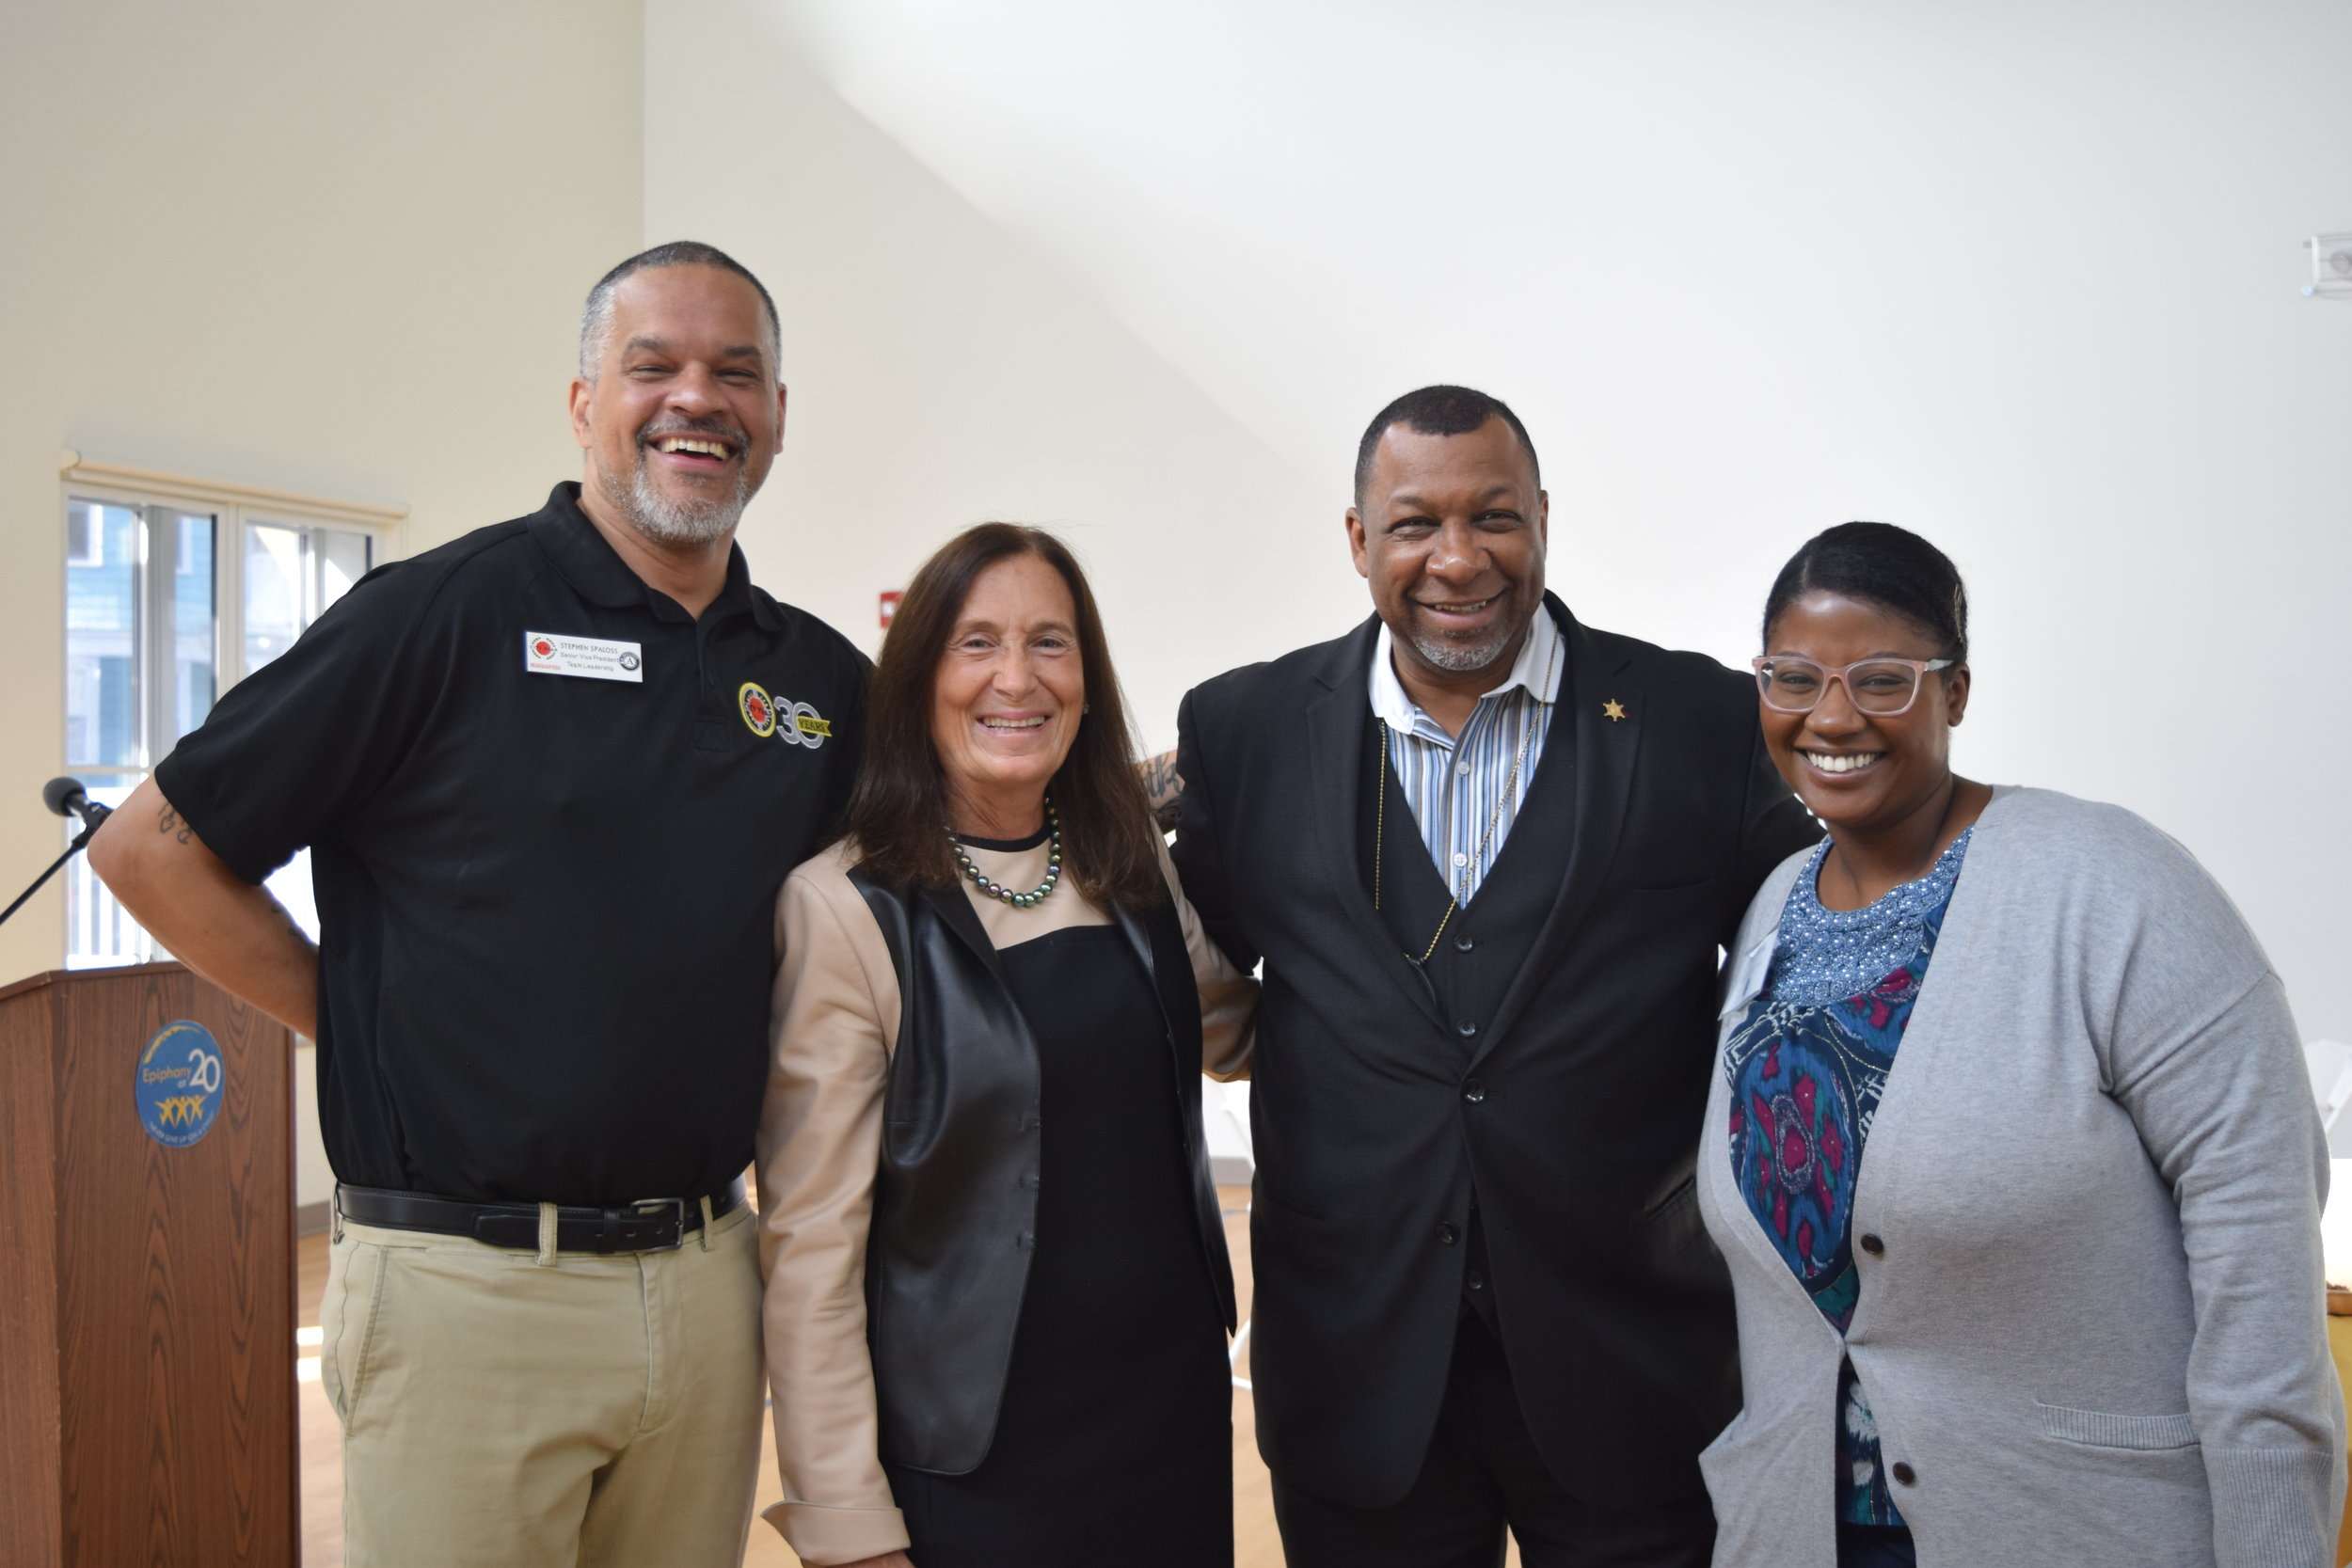 Stephen Spaloss (Senior Vice President of the Team Leadership program at City Year), Deborah Goldberg (Treasurer of Massachusetts), Steven W. Tompkins (Sheriff of Suffolk County), and Erika Forrest (Director of Graduate Support at Epiphany)